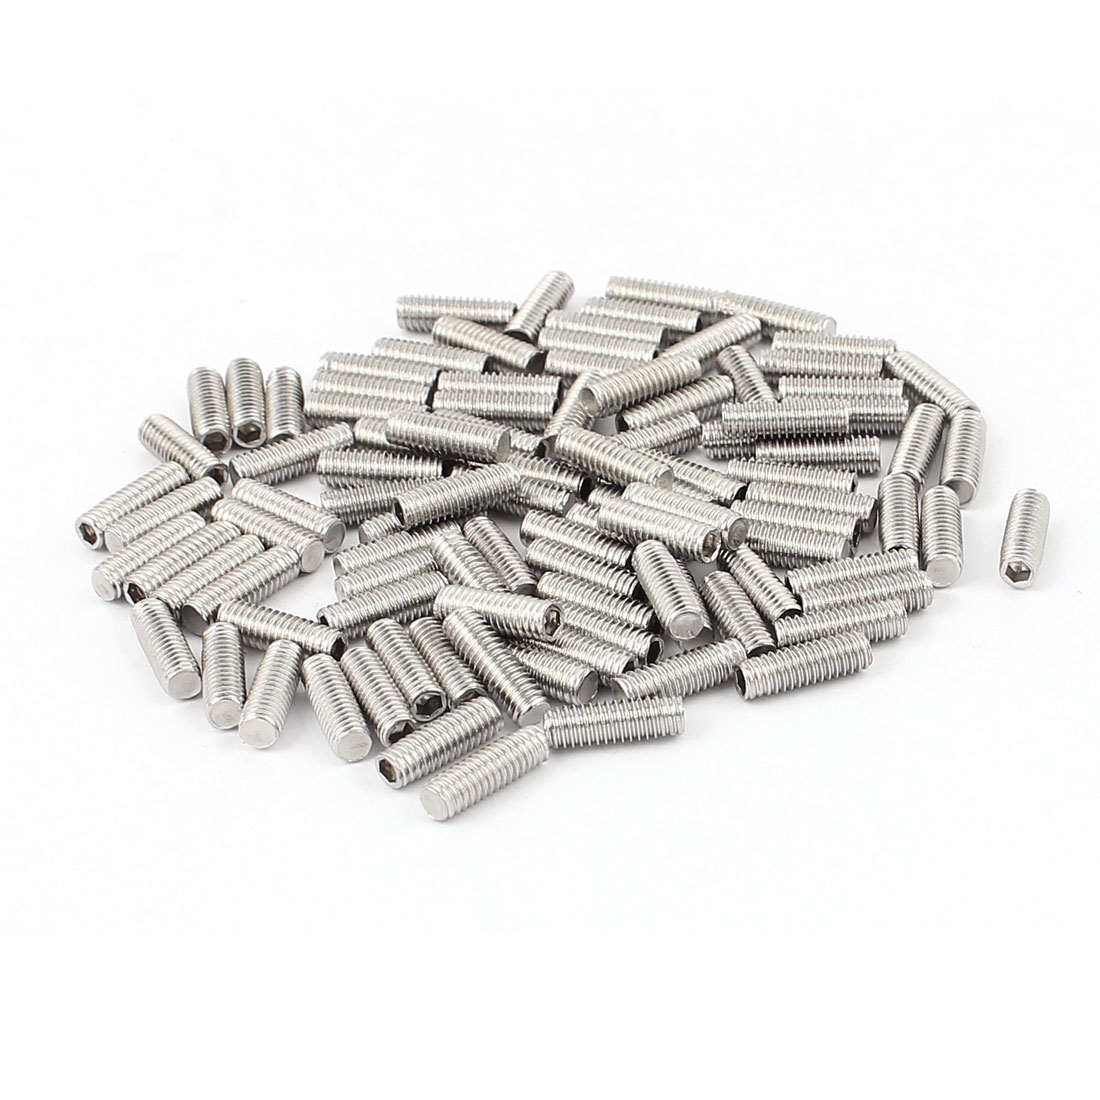 100pcs Stainless Steel M4x12mm Flat Point Hex Socket Grub Screws